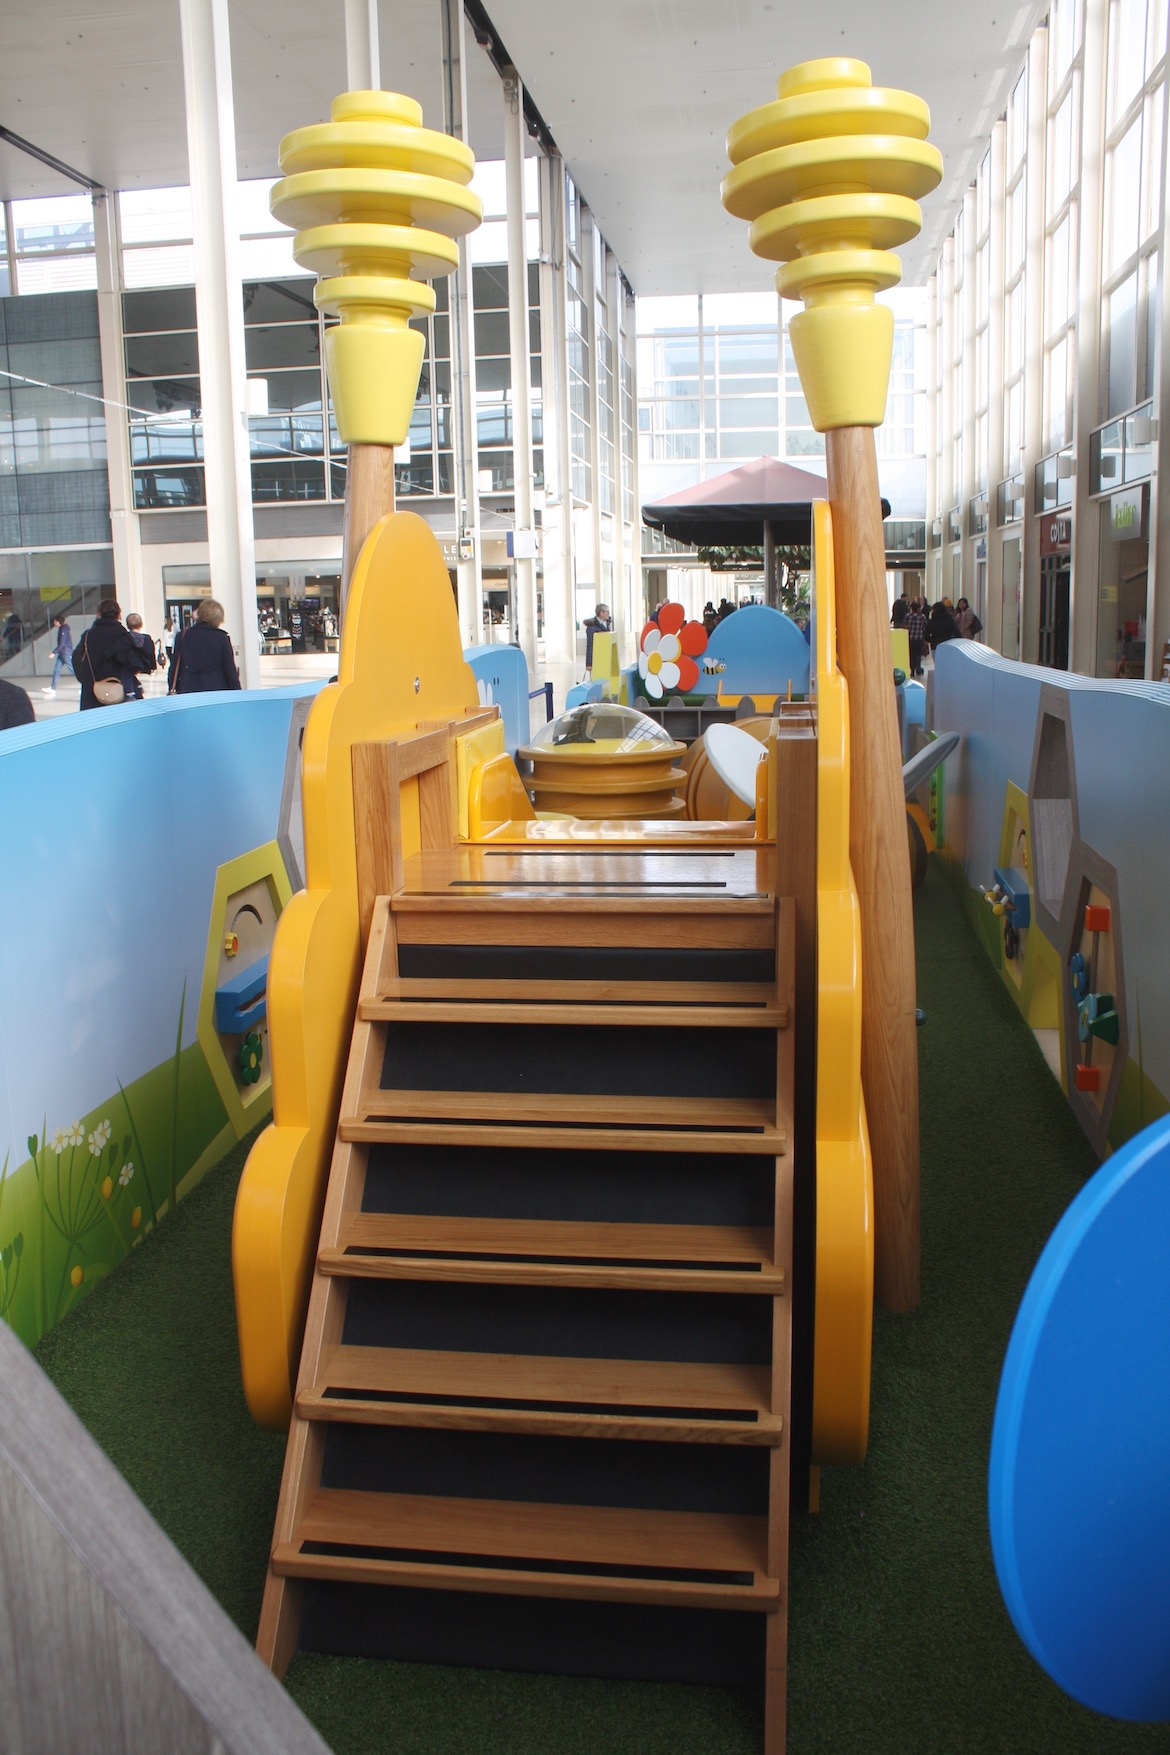 The hand-built anti-slip staircase to the slide is surrounded by 2 giant honey dippers.